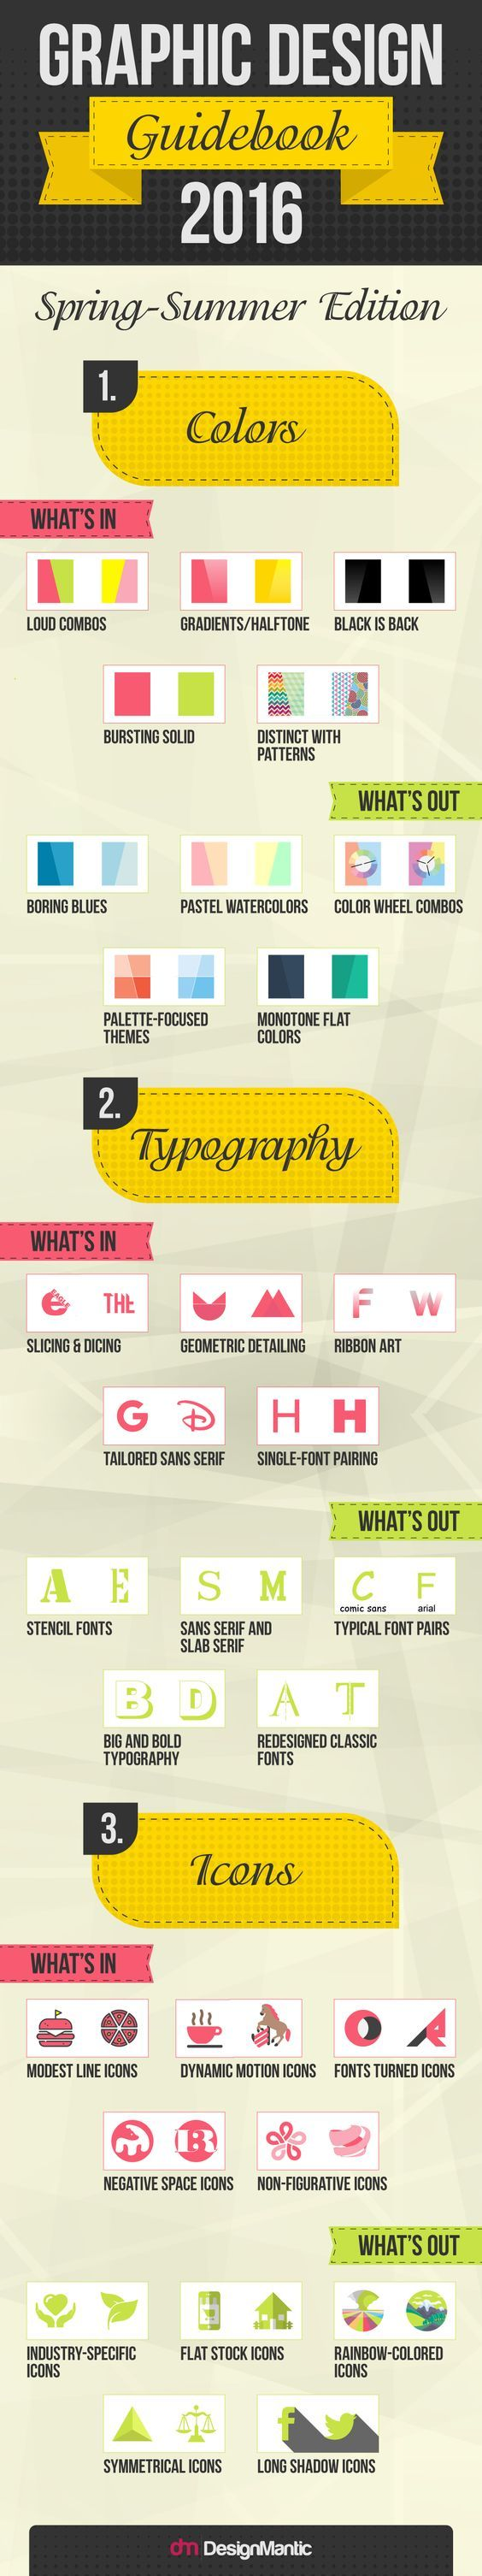 best 25 graphic design trends ideas that you will like on